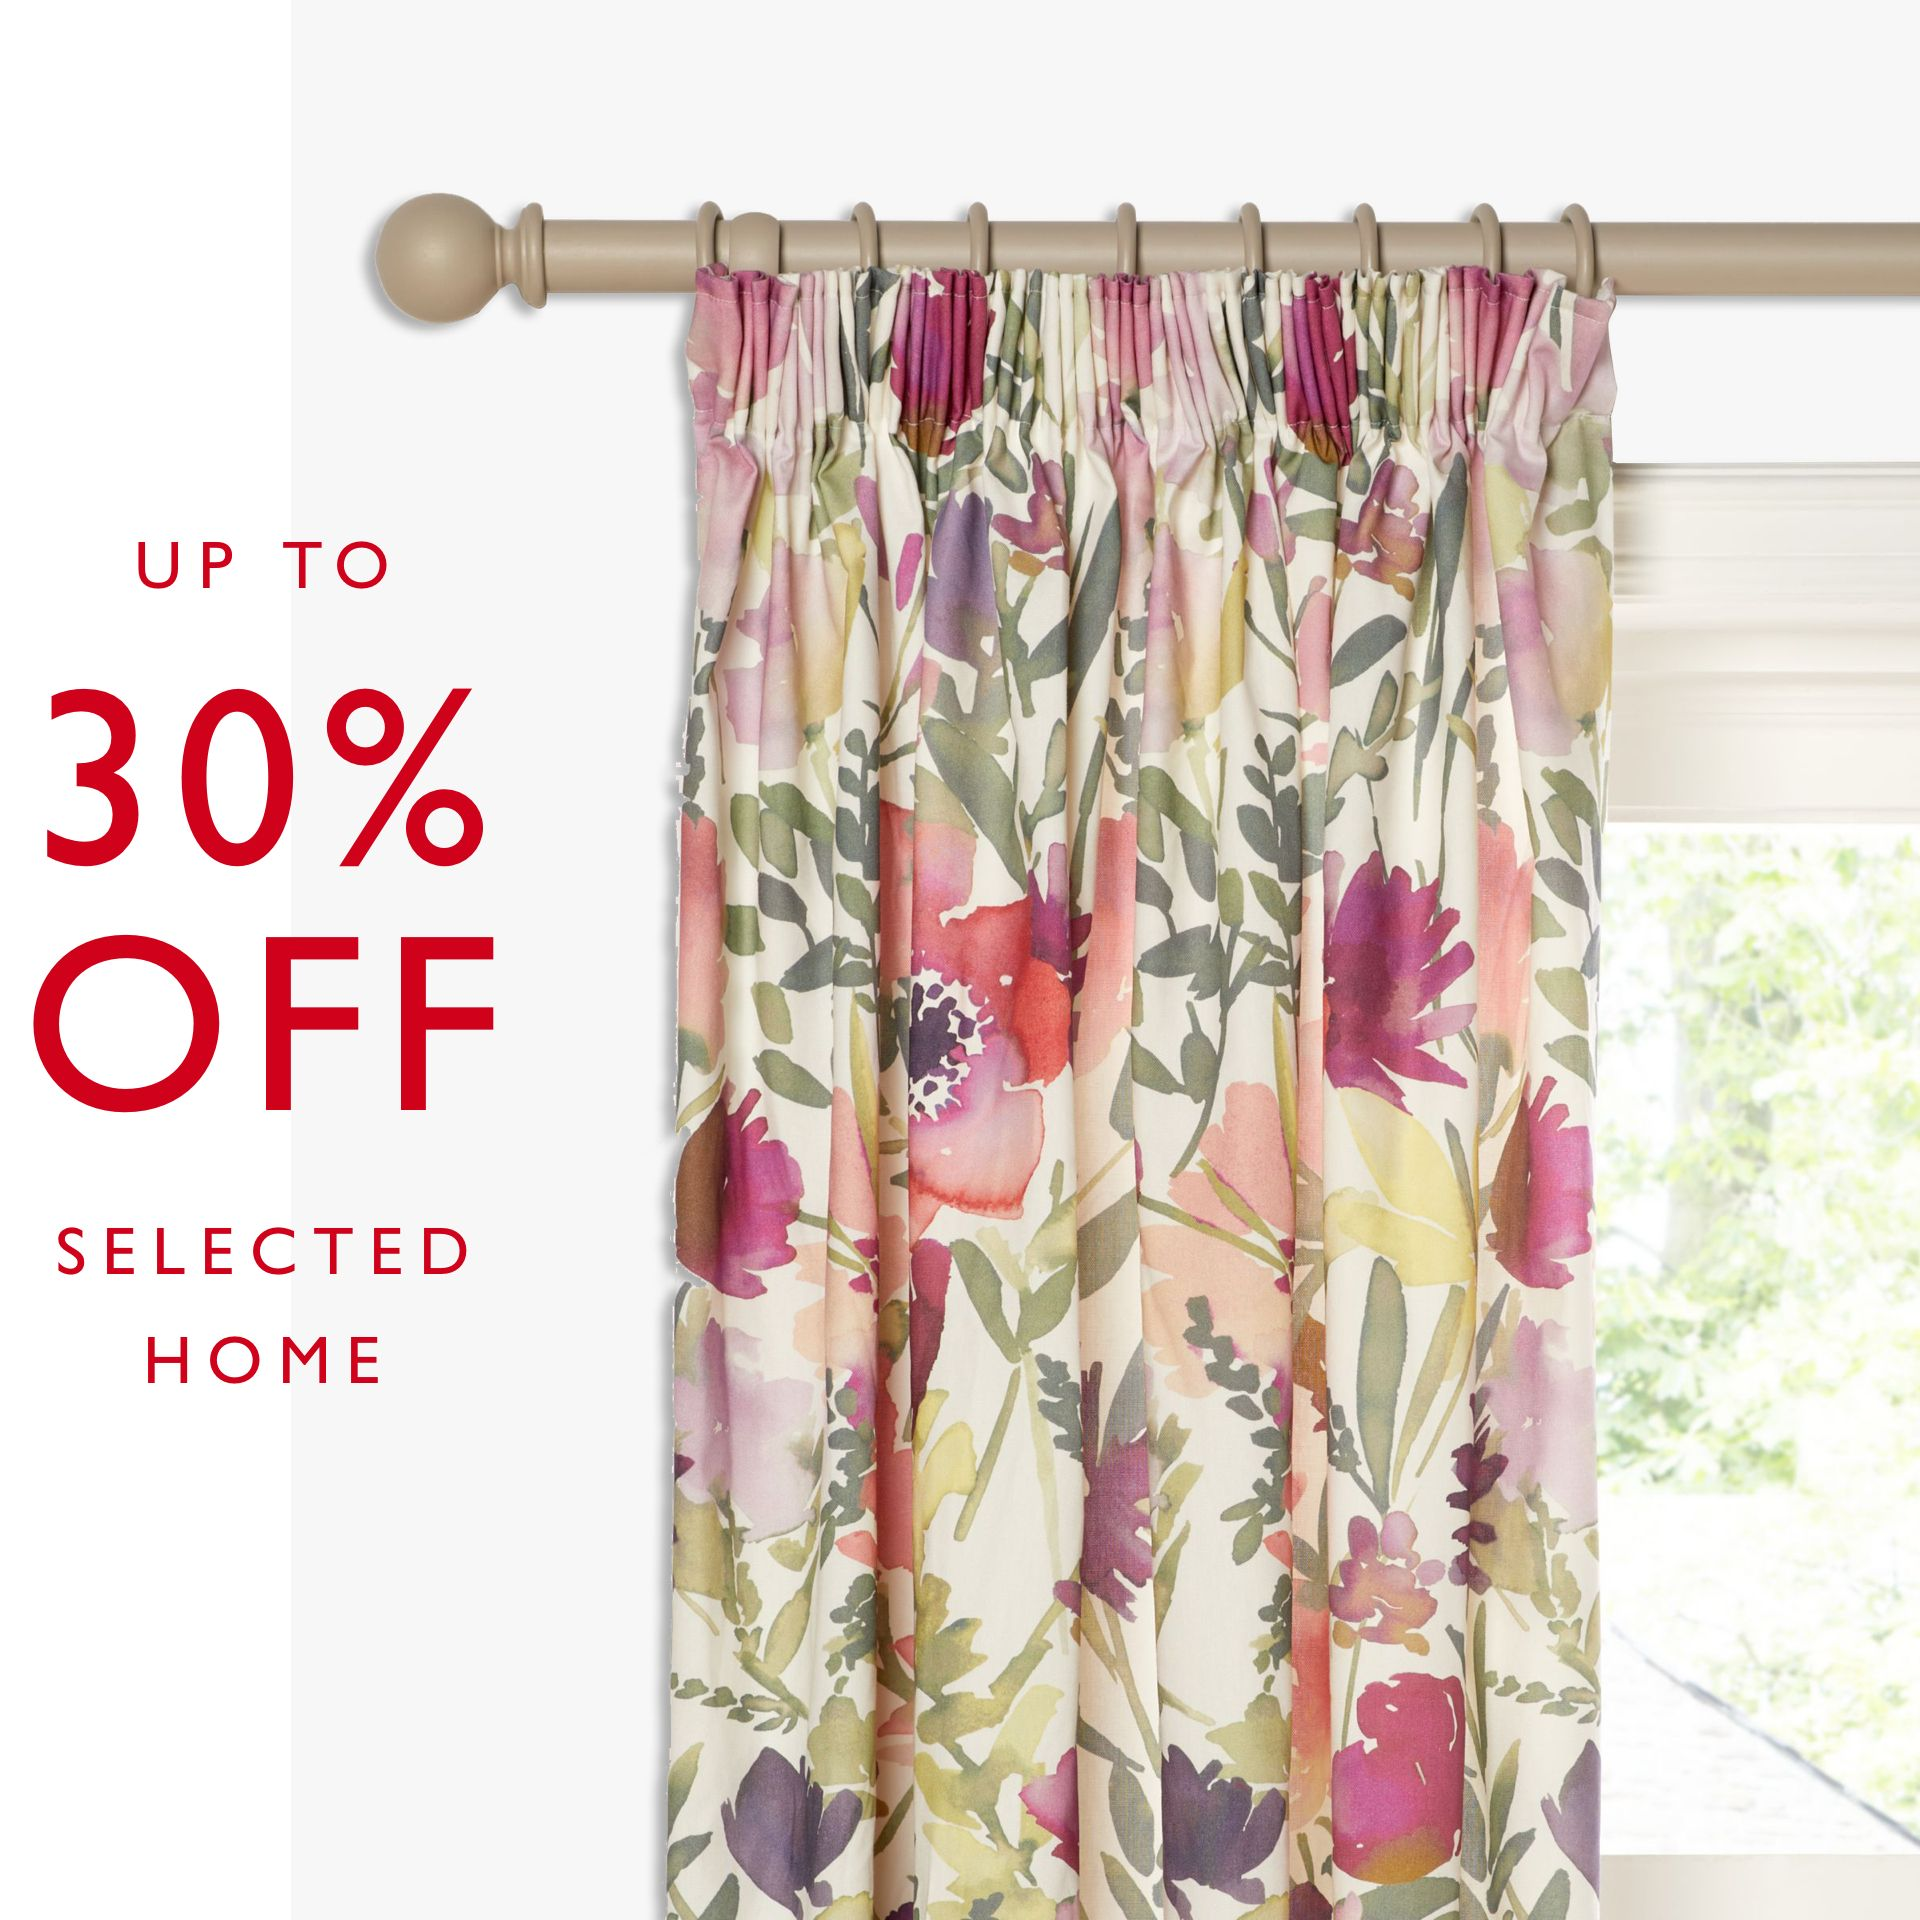 Up to 30% off selected Home & Garden